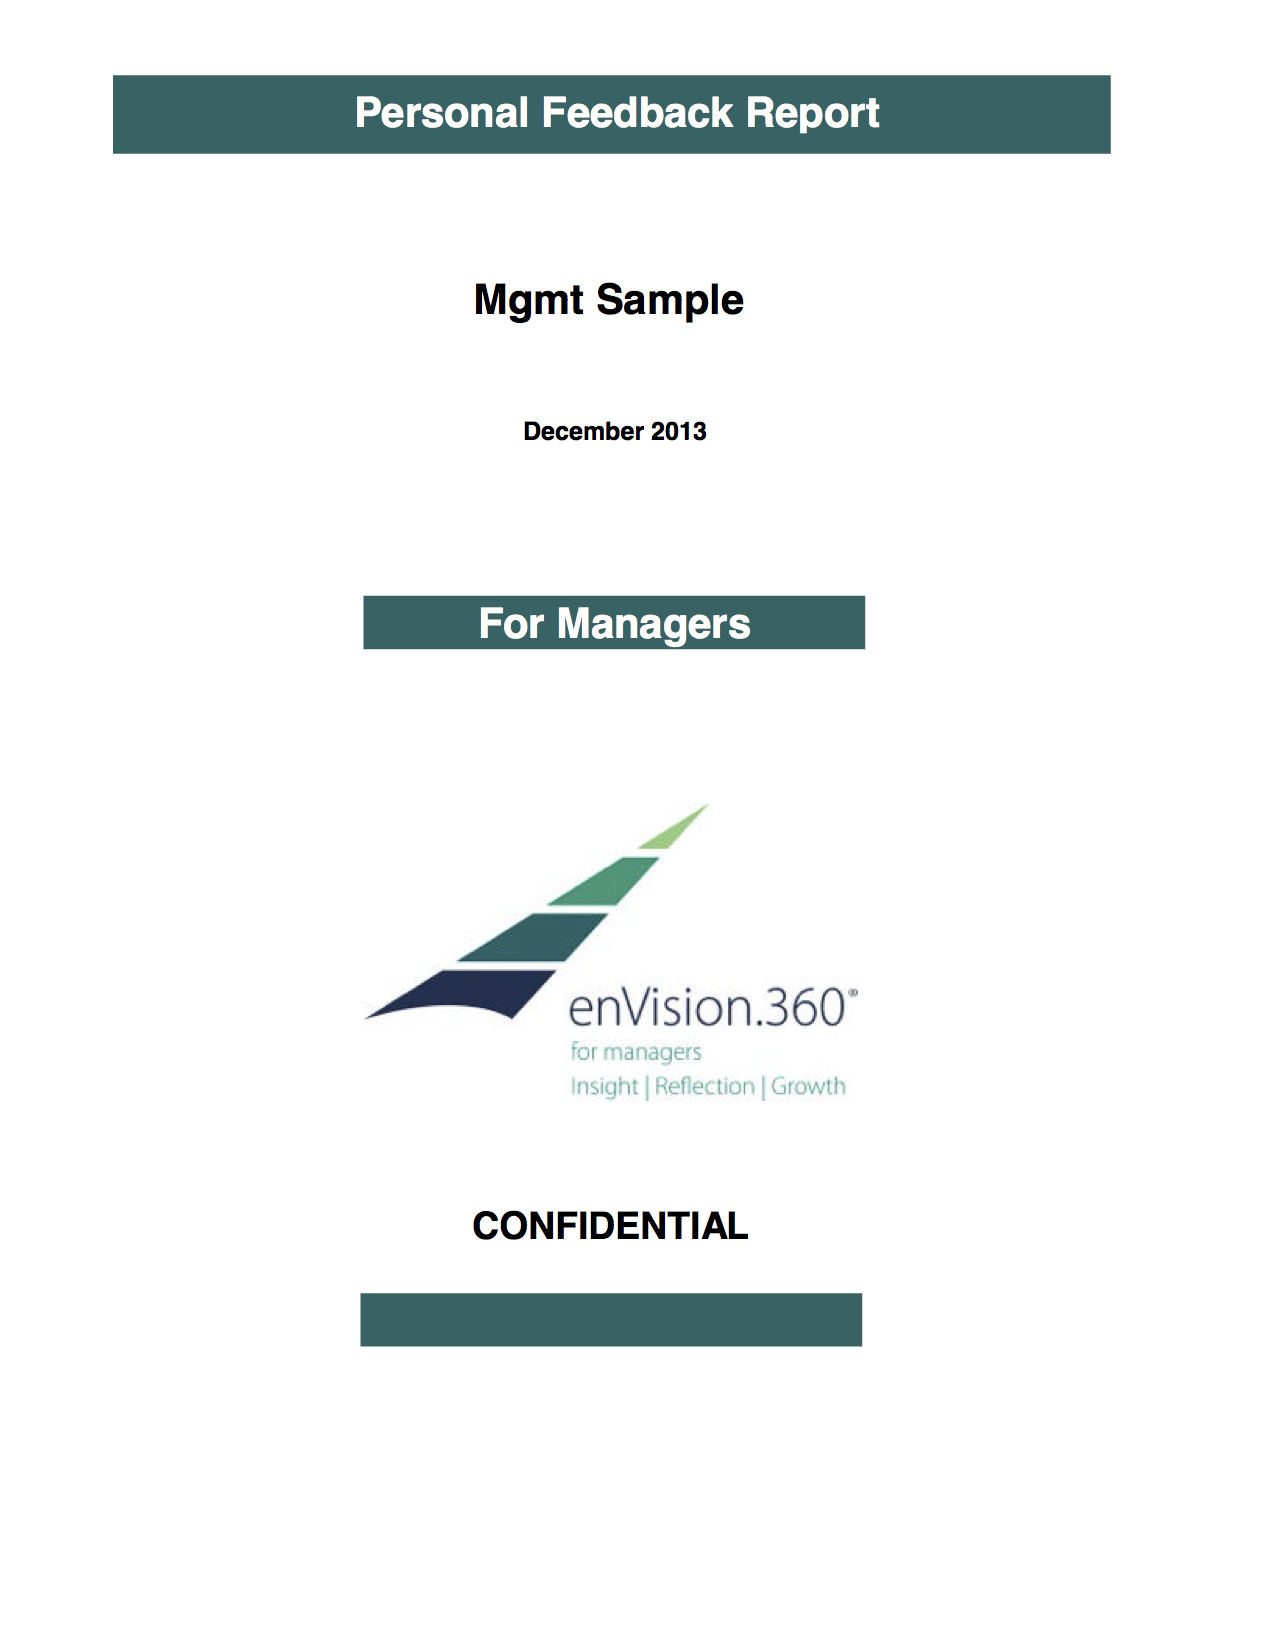 enVision.360 Sample Manager Report